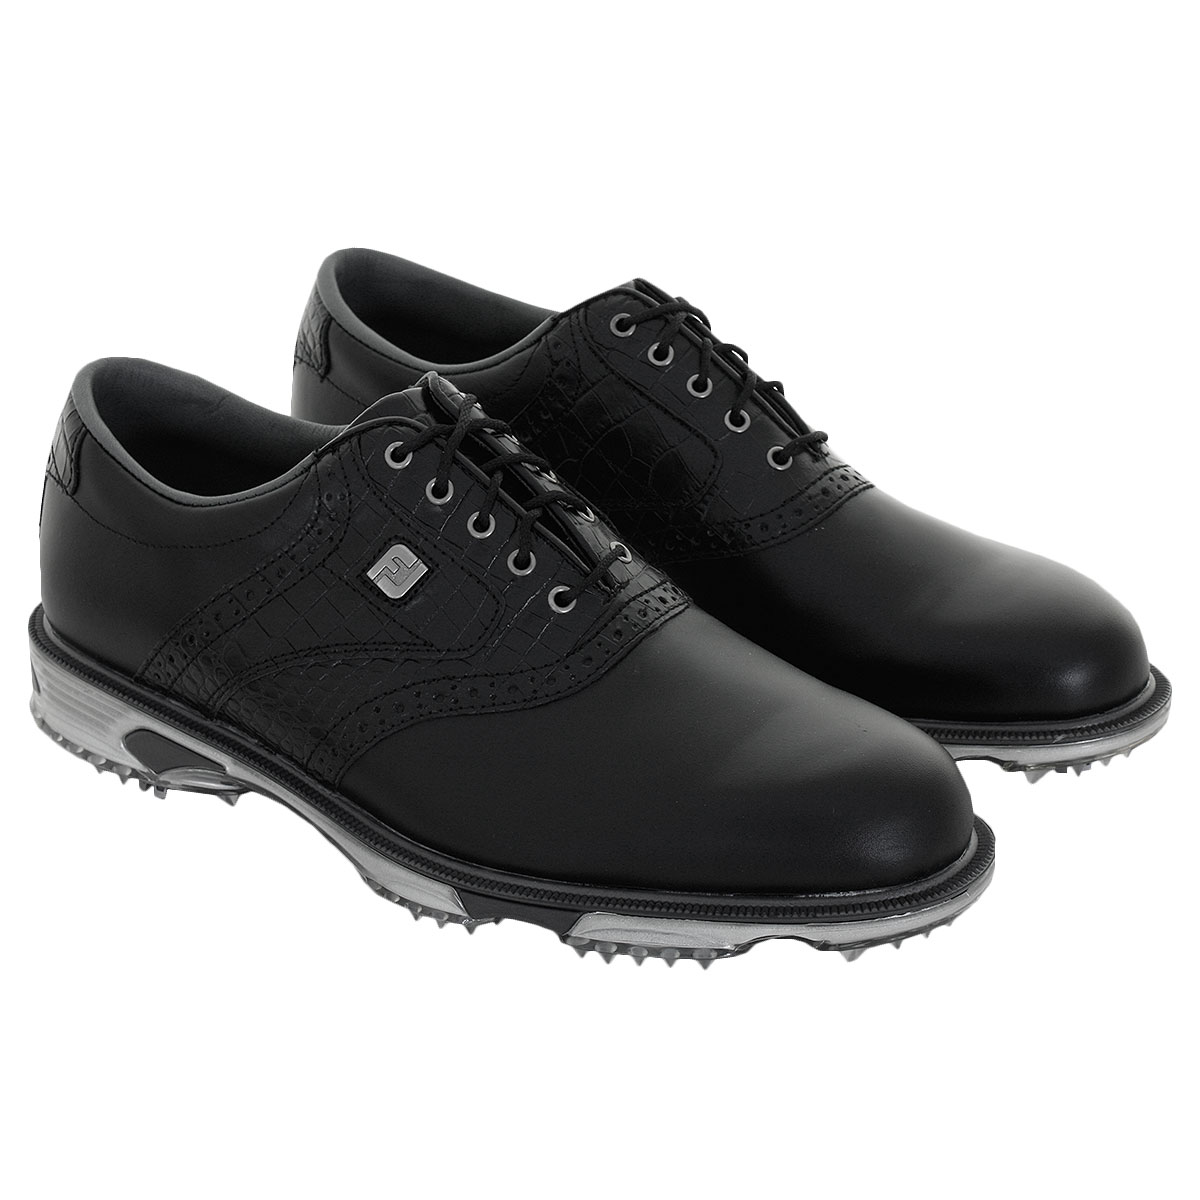 Footjoy-Mens-DryJoys-Tour-Golf-Waterproof-Spiked-Golf-Shoes-53-OFF-RRP thumbnail 6